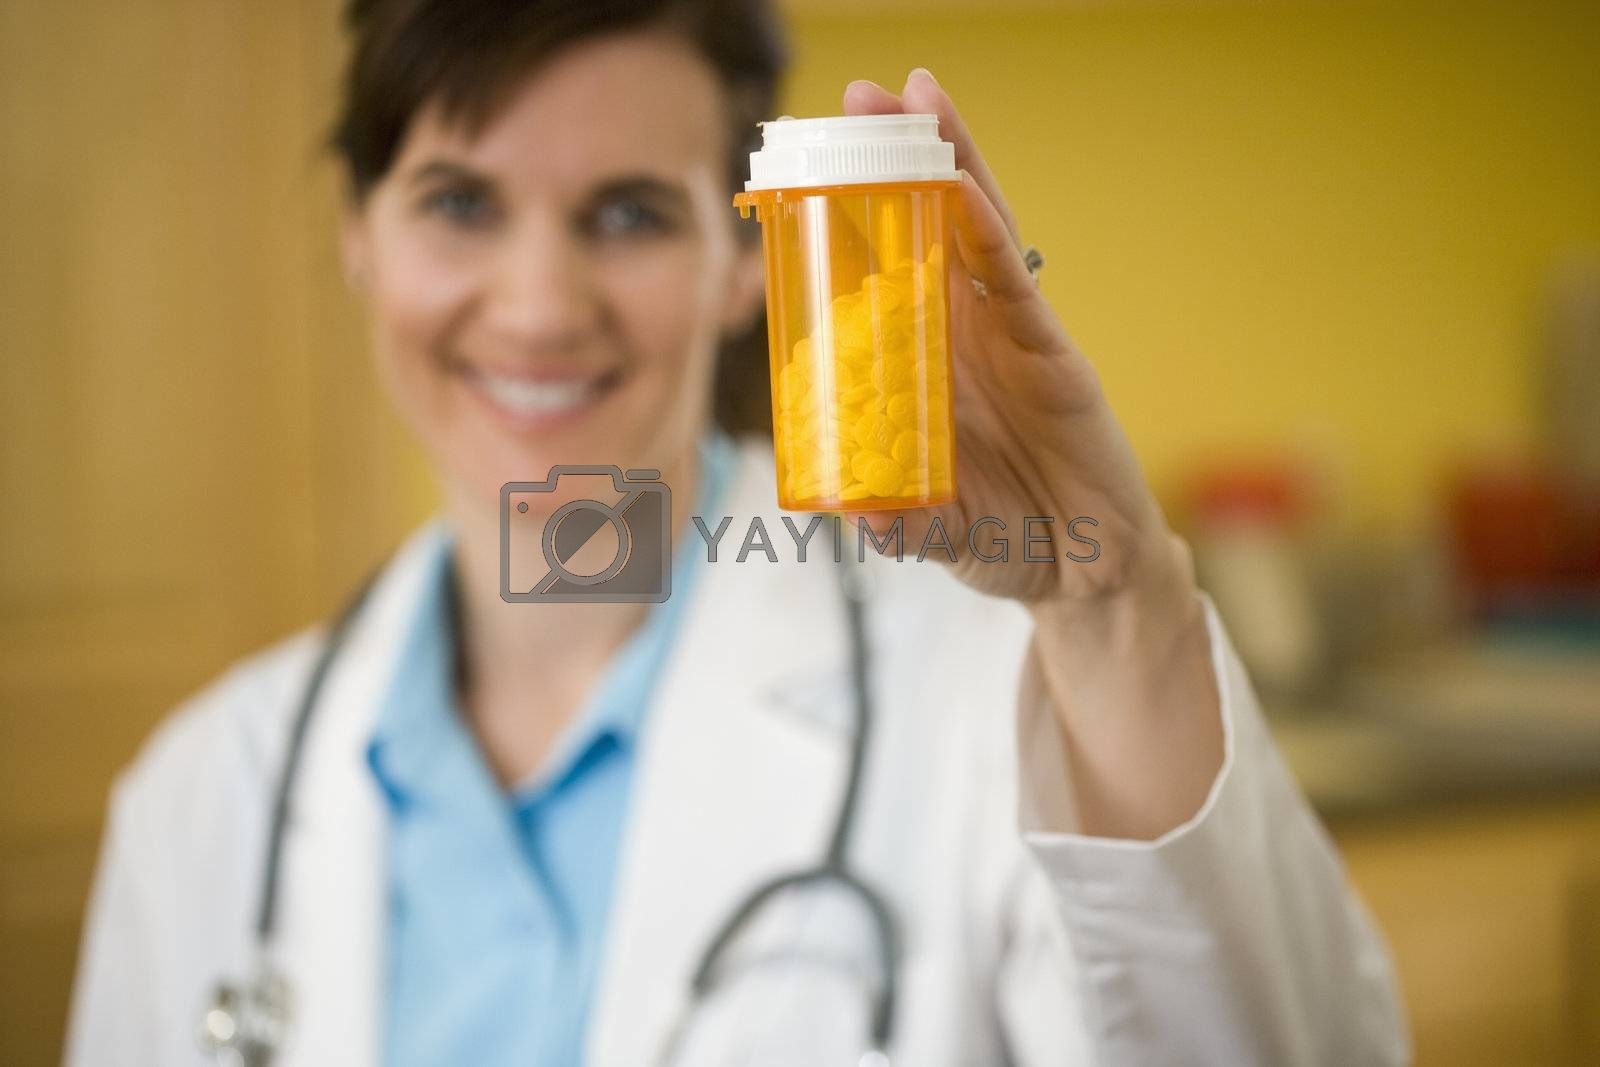 Female Physician holding bottle of pills up to camera, focus on pills